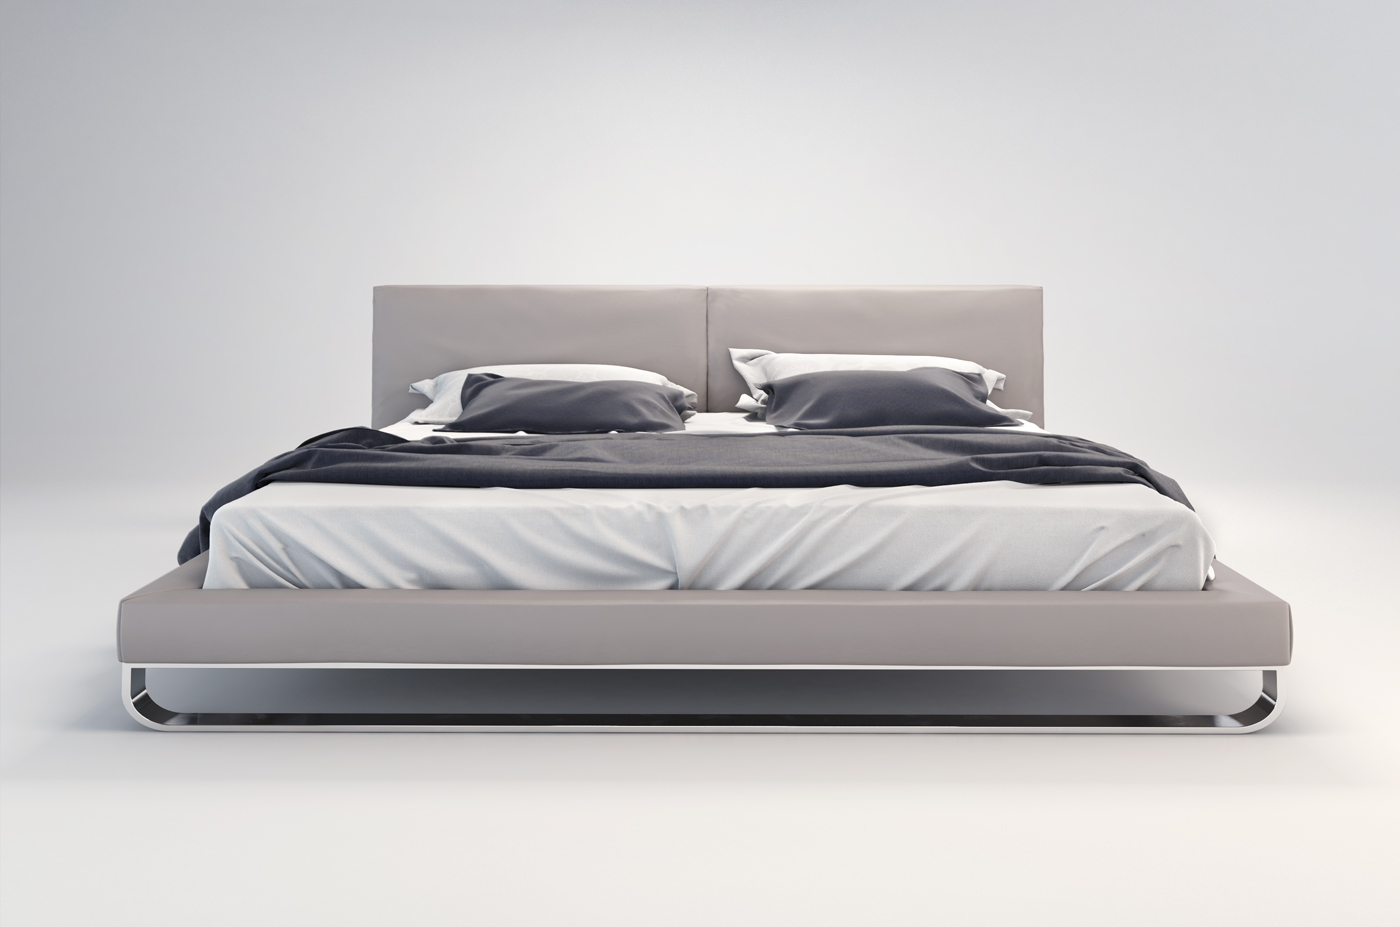 chelsea modern leather bed by modloft nova interiors - chelsea modern leather bed by modloft